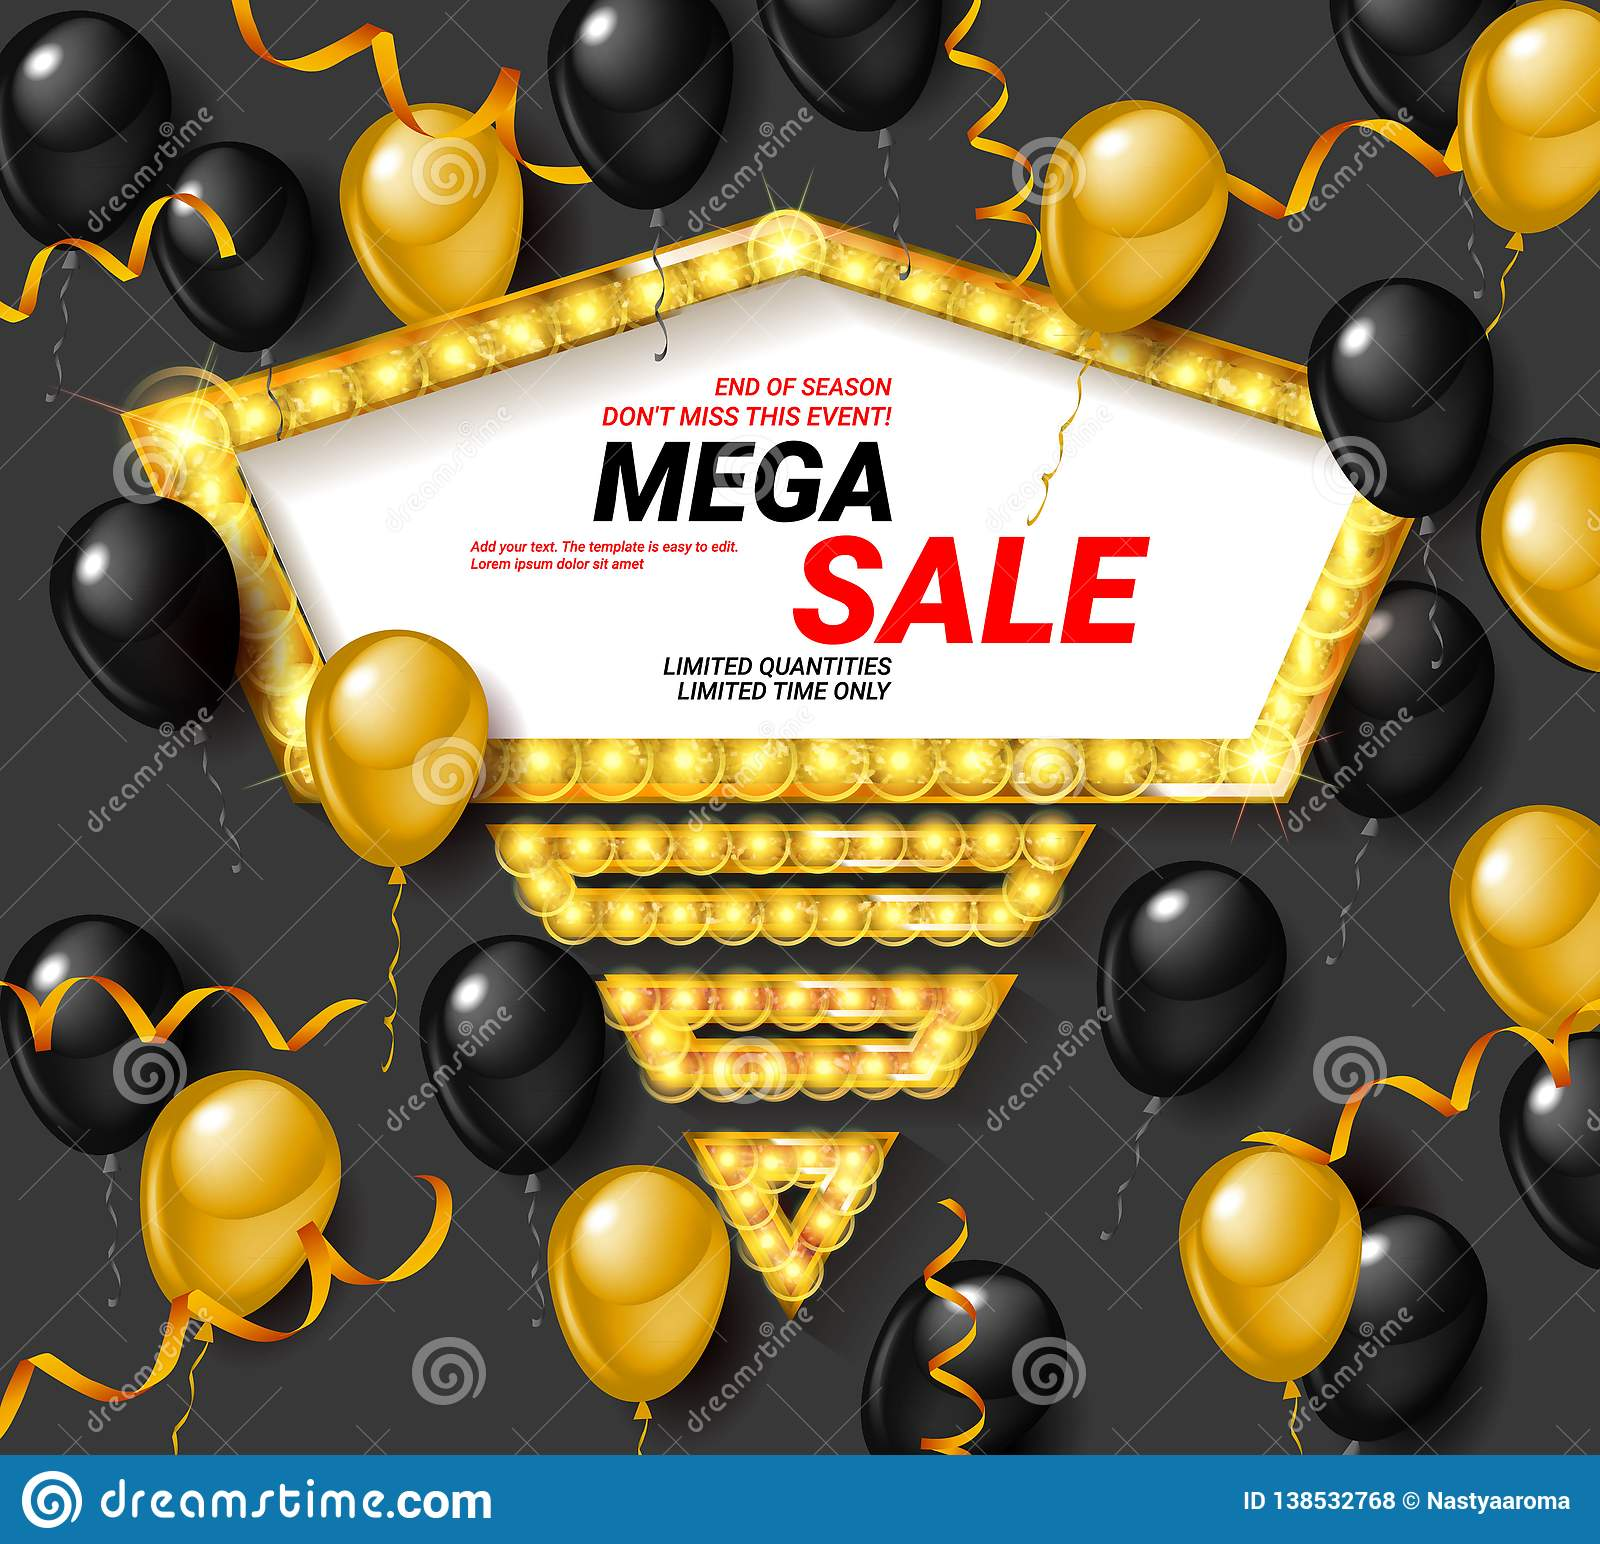 843c5c9c29d Special offer celebrate background with black and gold air balloons. Super  sale. Realistic vector stock design for shop and sale banners